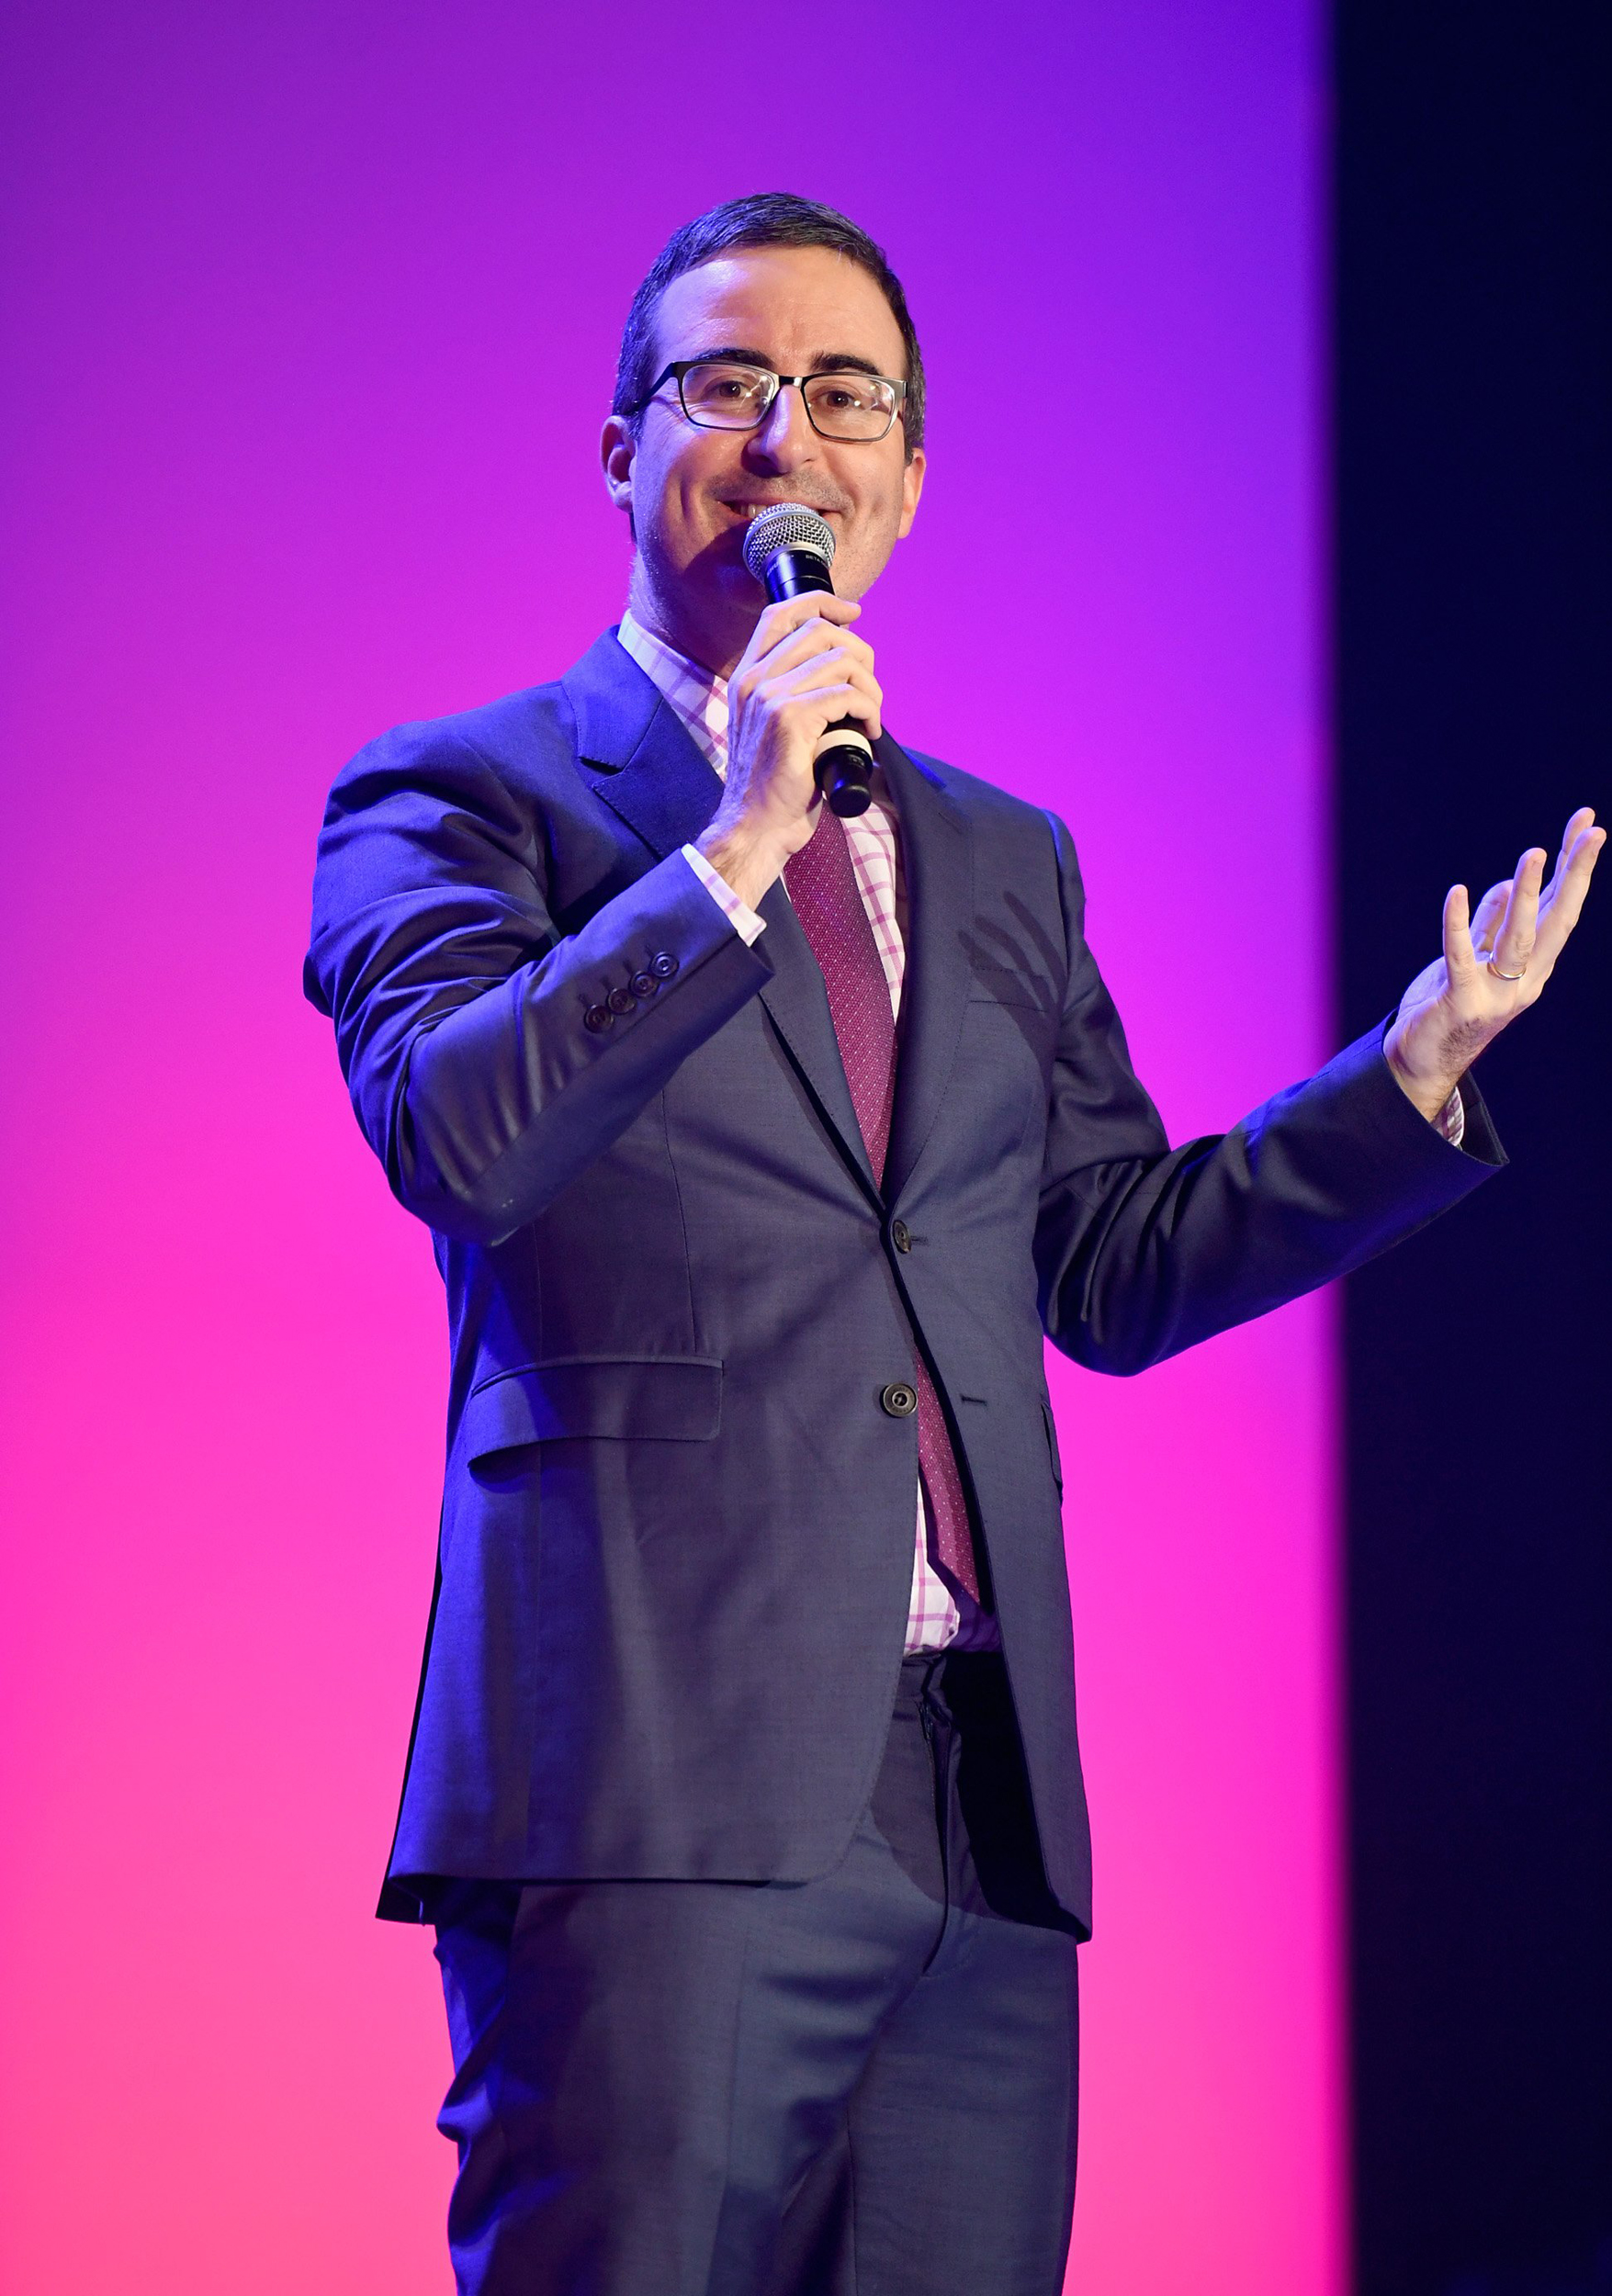 Coal Company CEO Sues HBO, John Oliver for Defamation